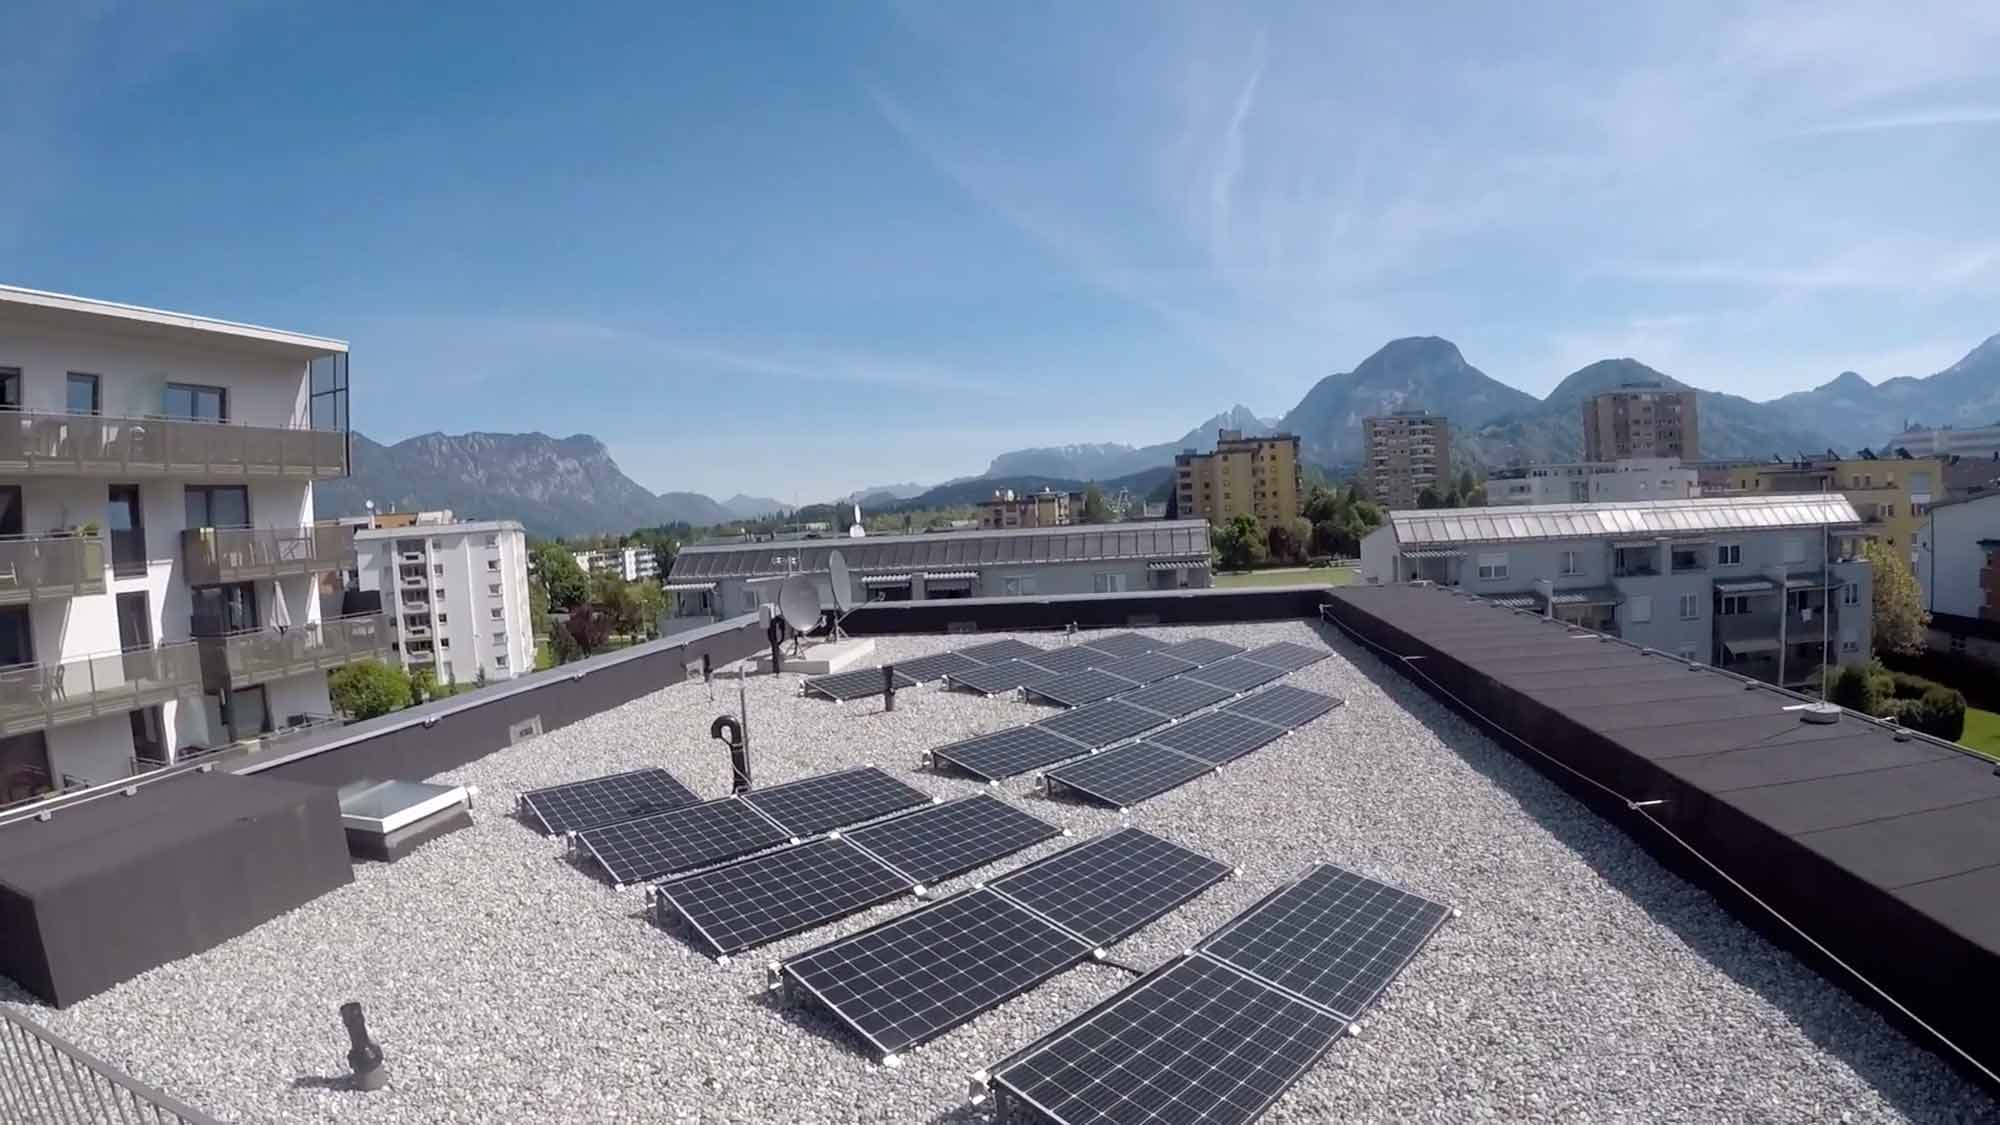 Südtiroler Siedlung, Neue Heimat Tirol (NHT), PV system with 29 kWpeak output installed on the three roofs of the first-phase buildings. Additional capacity of 40 kWpeak is planned for the second phase of construction, photo: Stadtwerke Wörgl GmbH